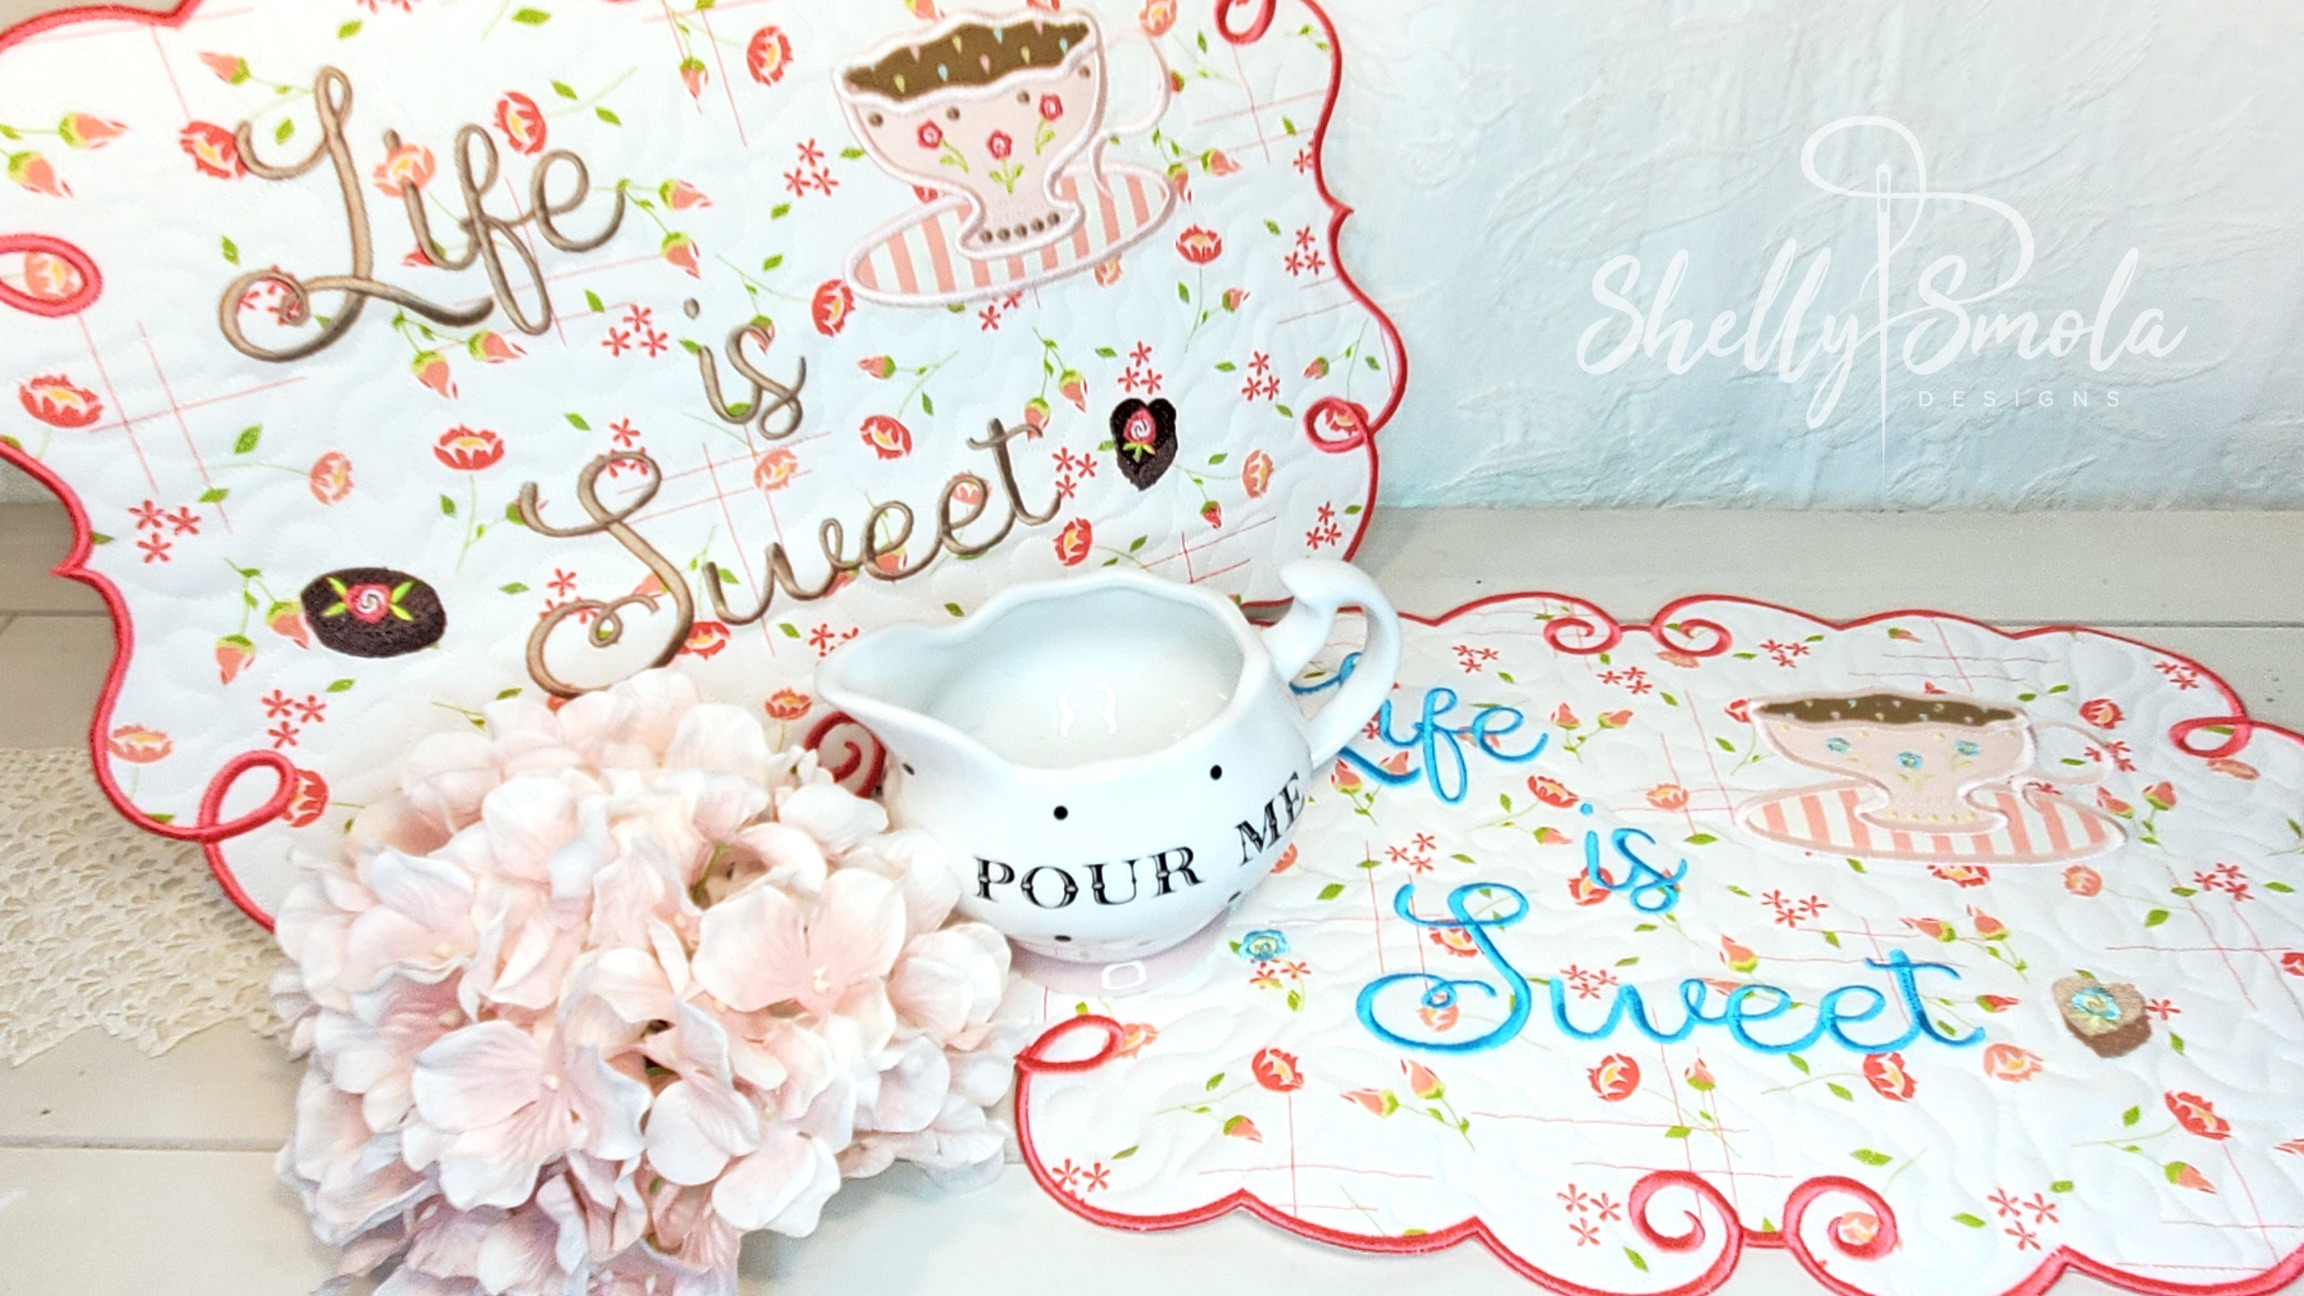 Life is Sweet Placemat by Shelly Smola